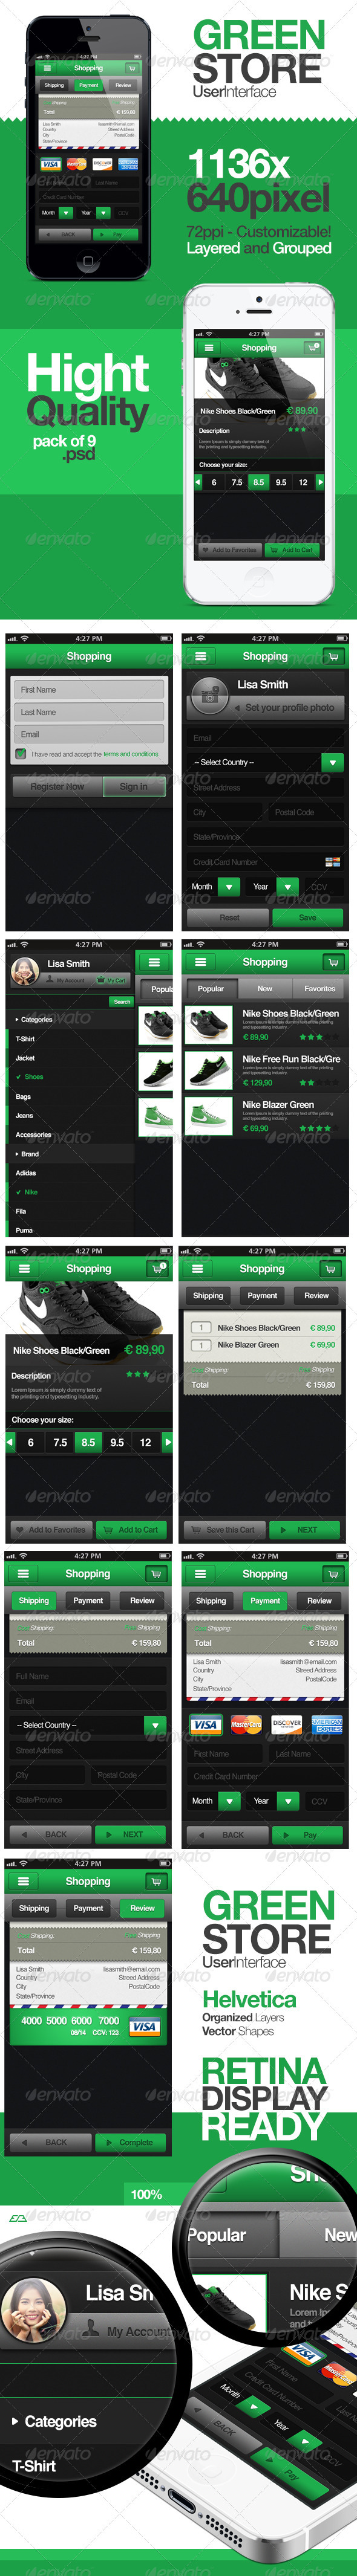 Green Store - Shopping User Interface - User Interfaces Web Elements